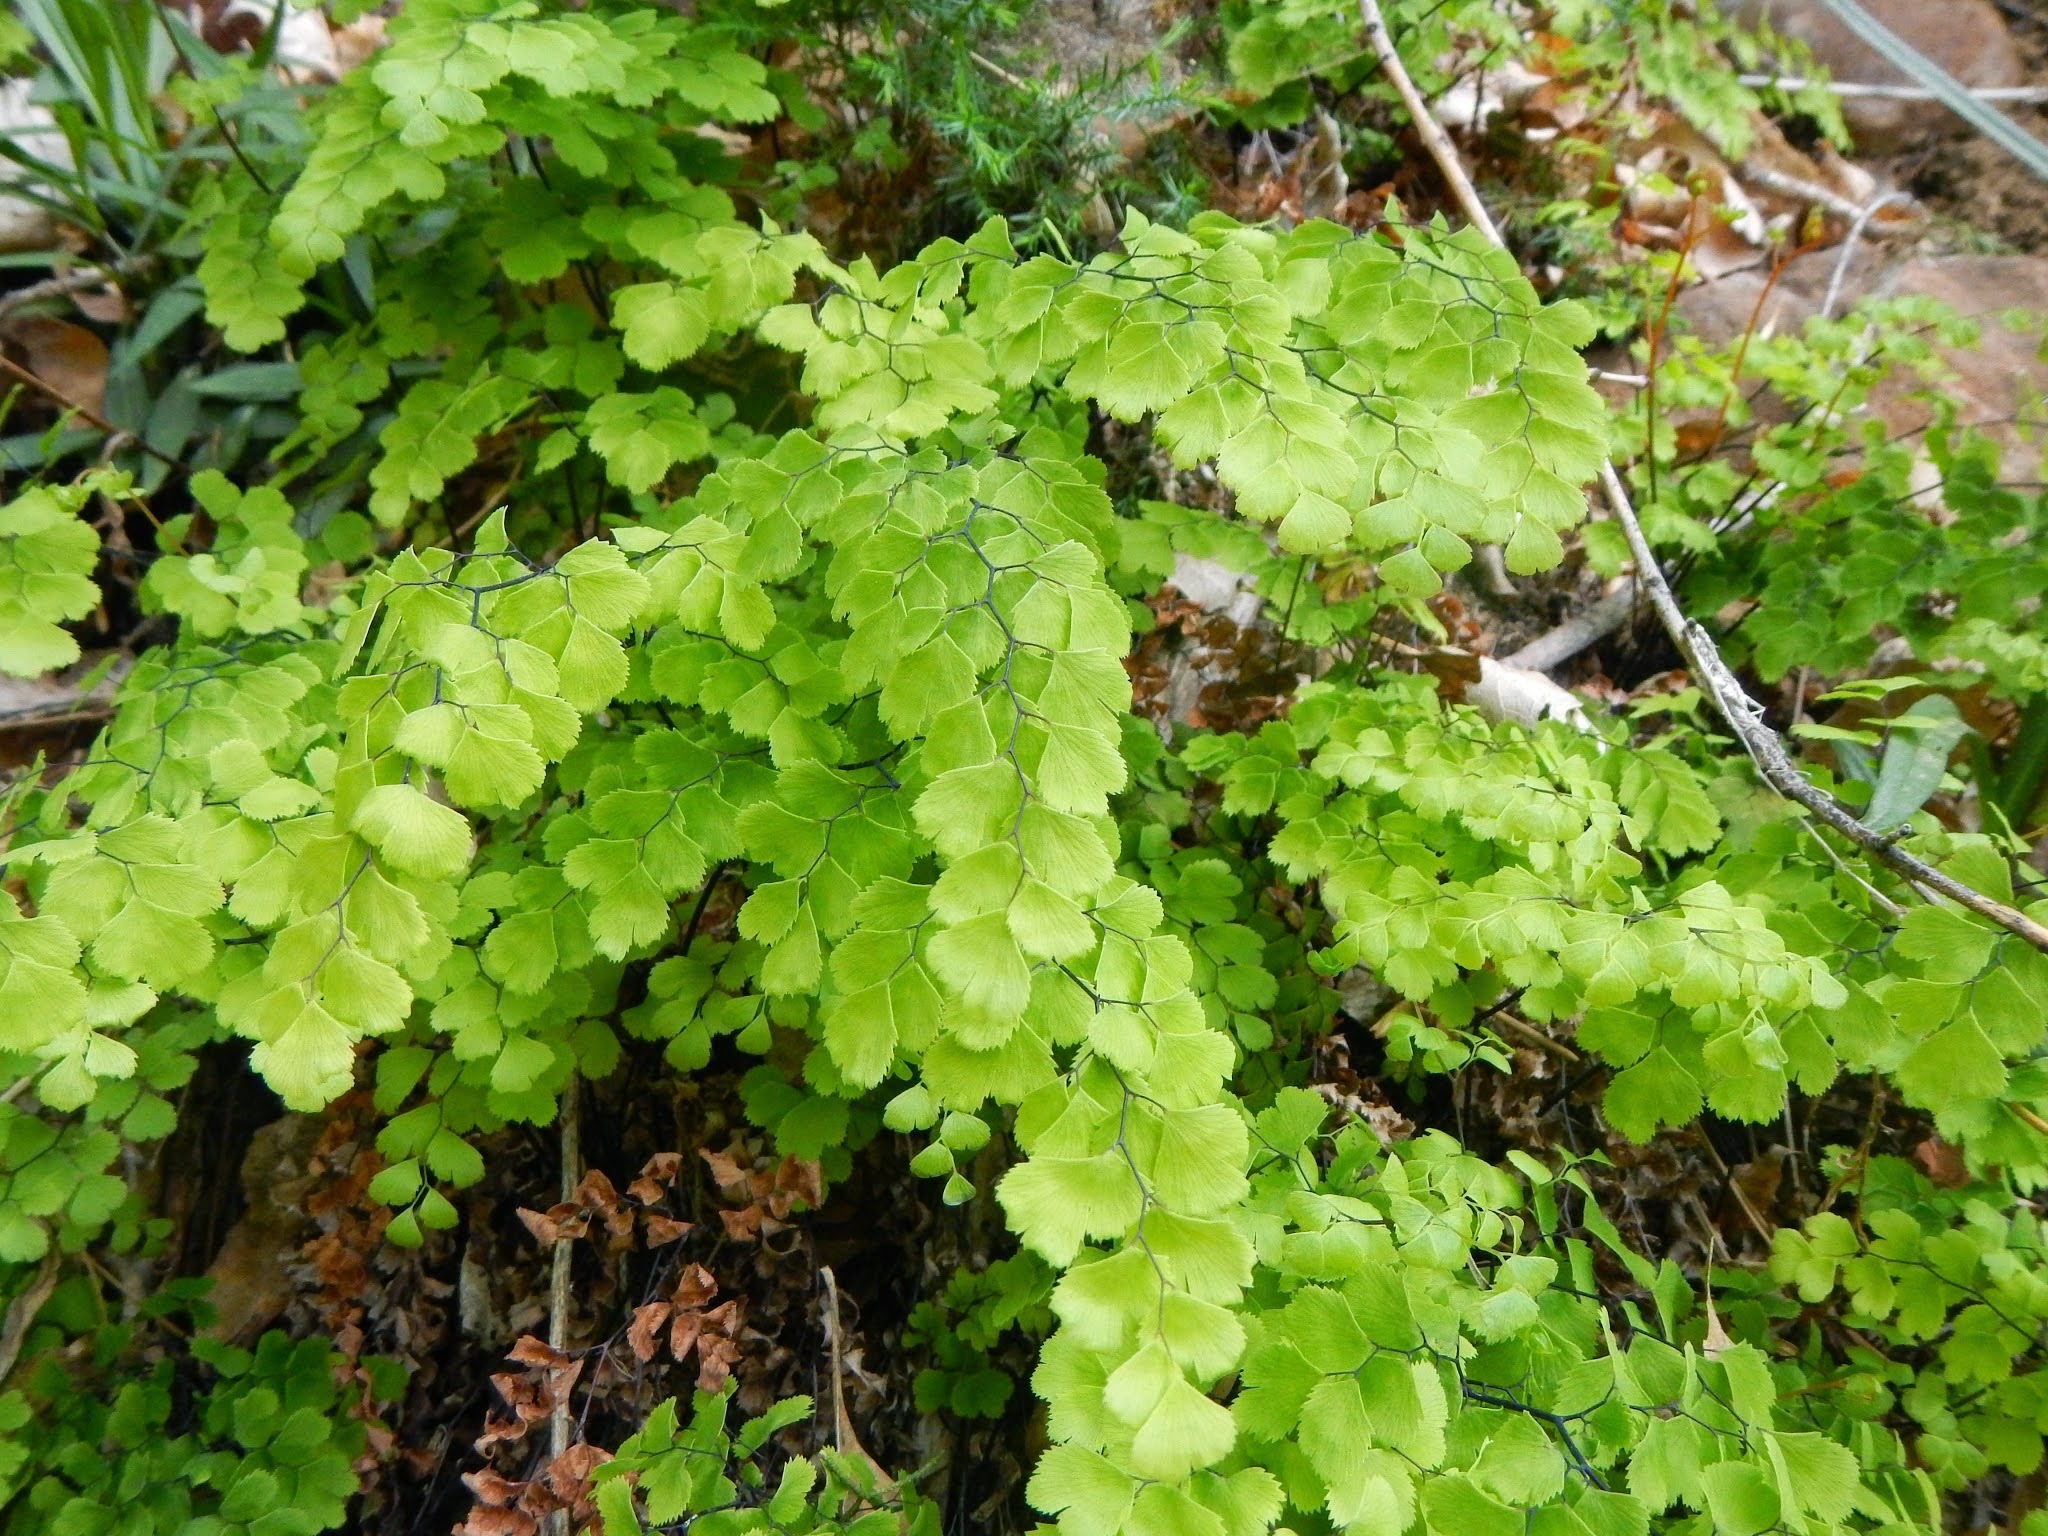 Photo: The maidenhair fern in Oregon doesn't quite look like this.